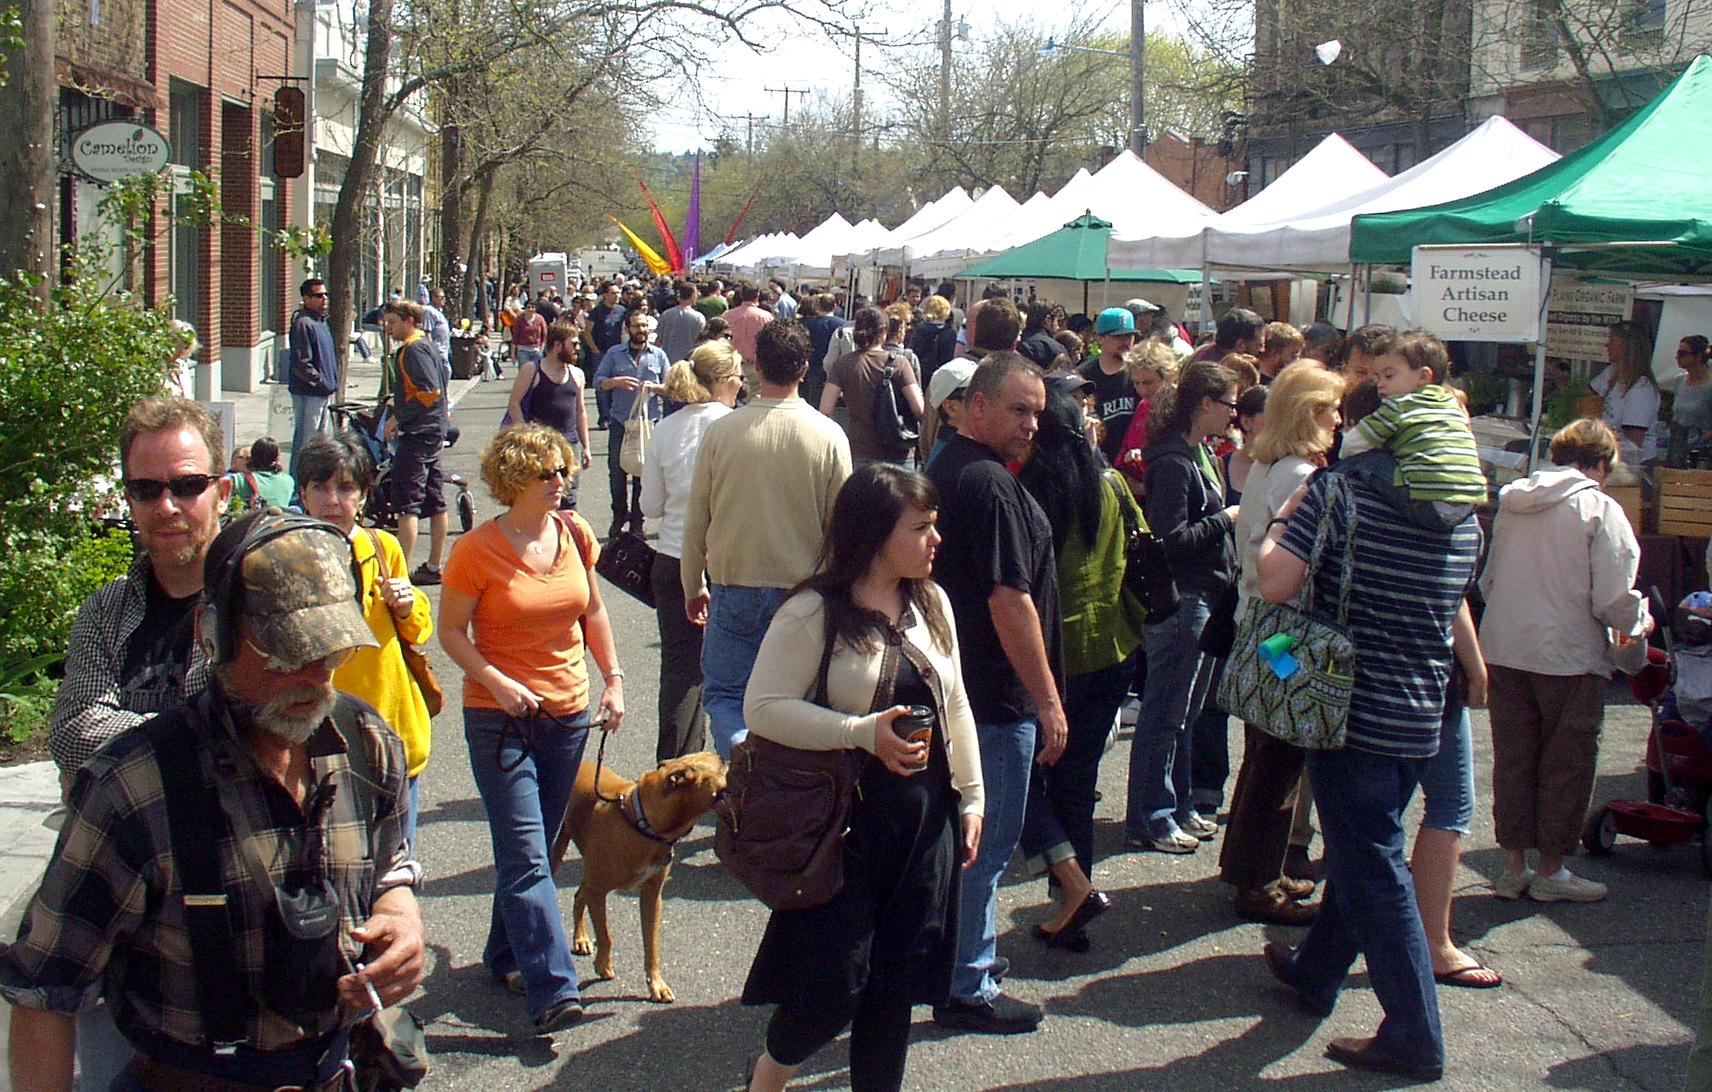 May 3rd was just another sunny Sunday at Ballard Farmers Market. Photo copyright 2009 by Zachary D. Lyons.